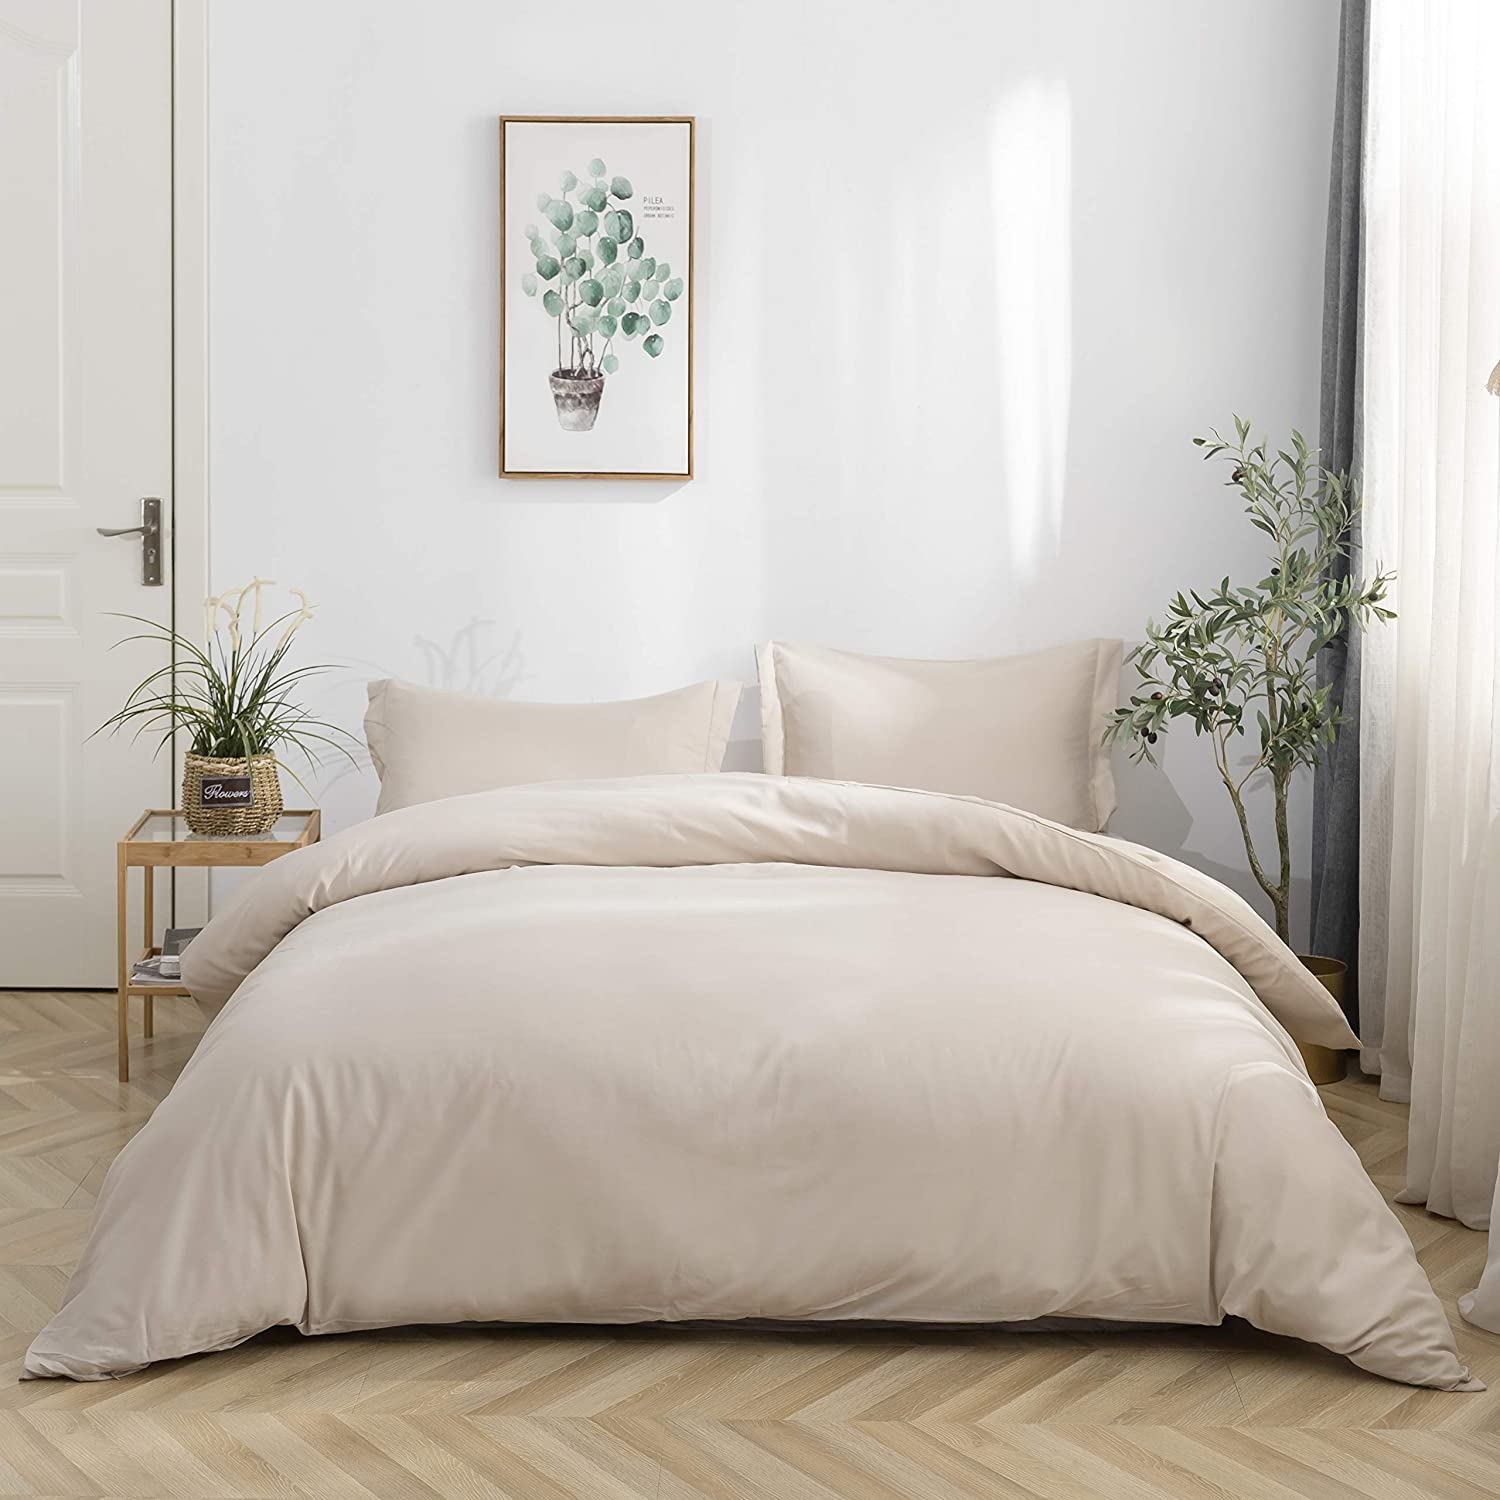 Mohap Duvet Cover Set Queen Beige 3 Pieces Double Brushed Microfiber Solid Color Ultra Soft Stain and Fade Resistant